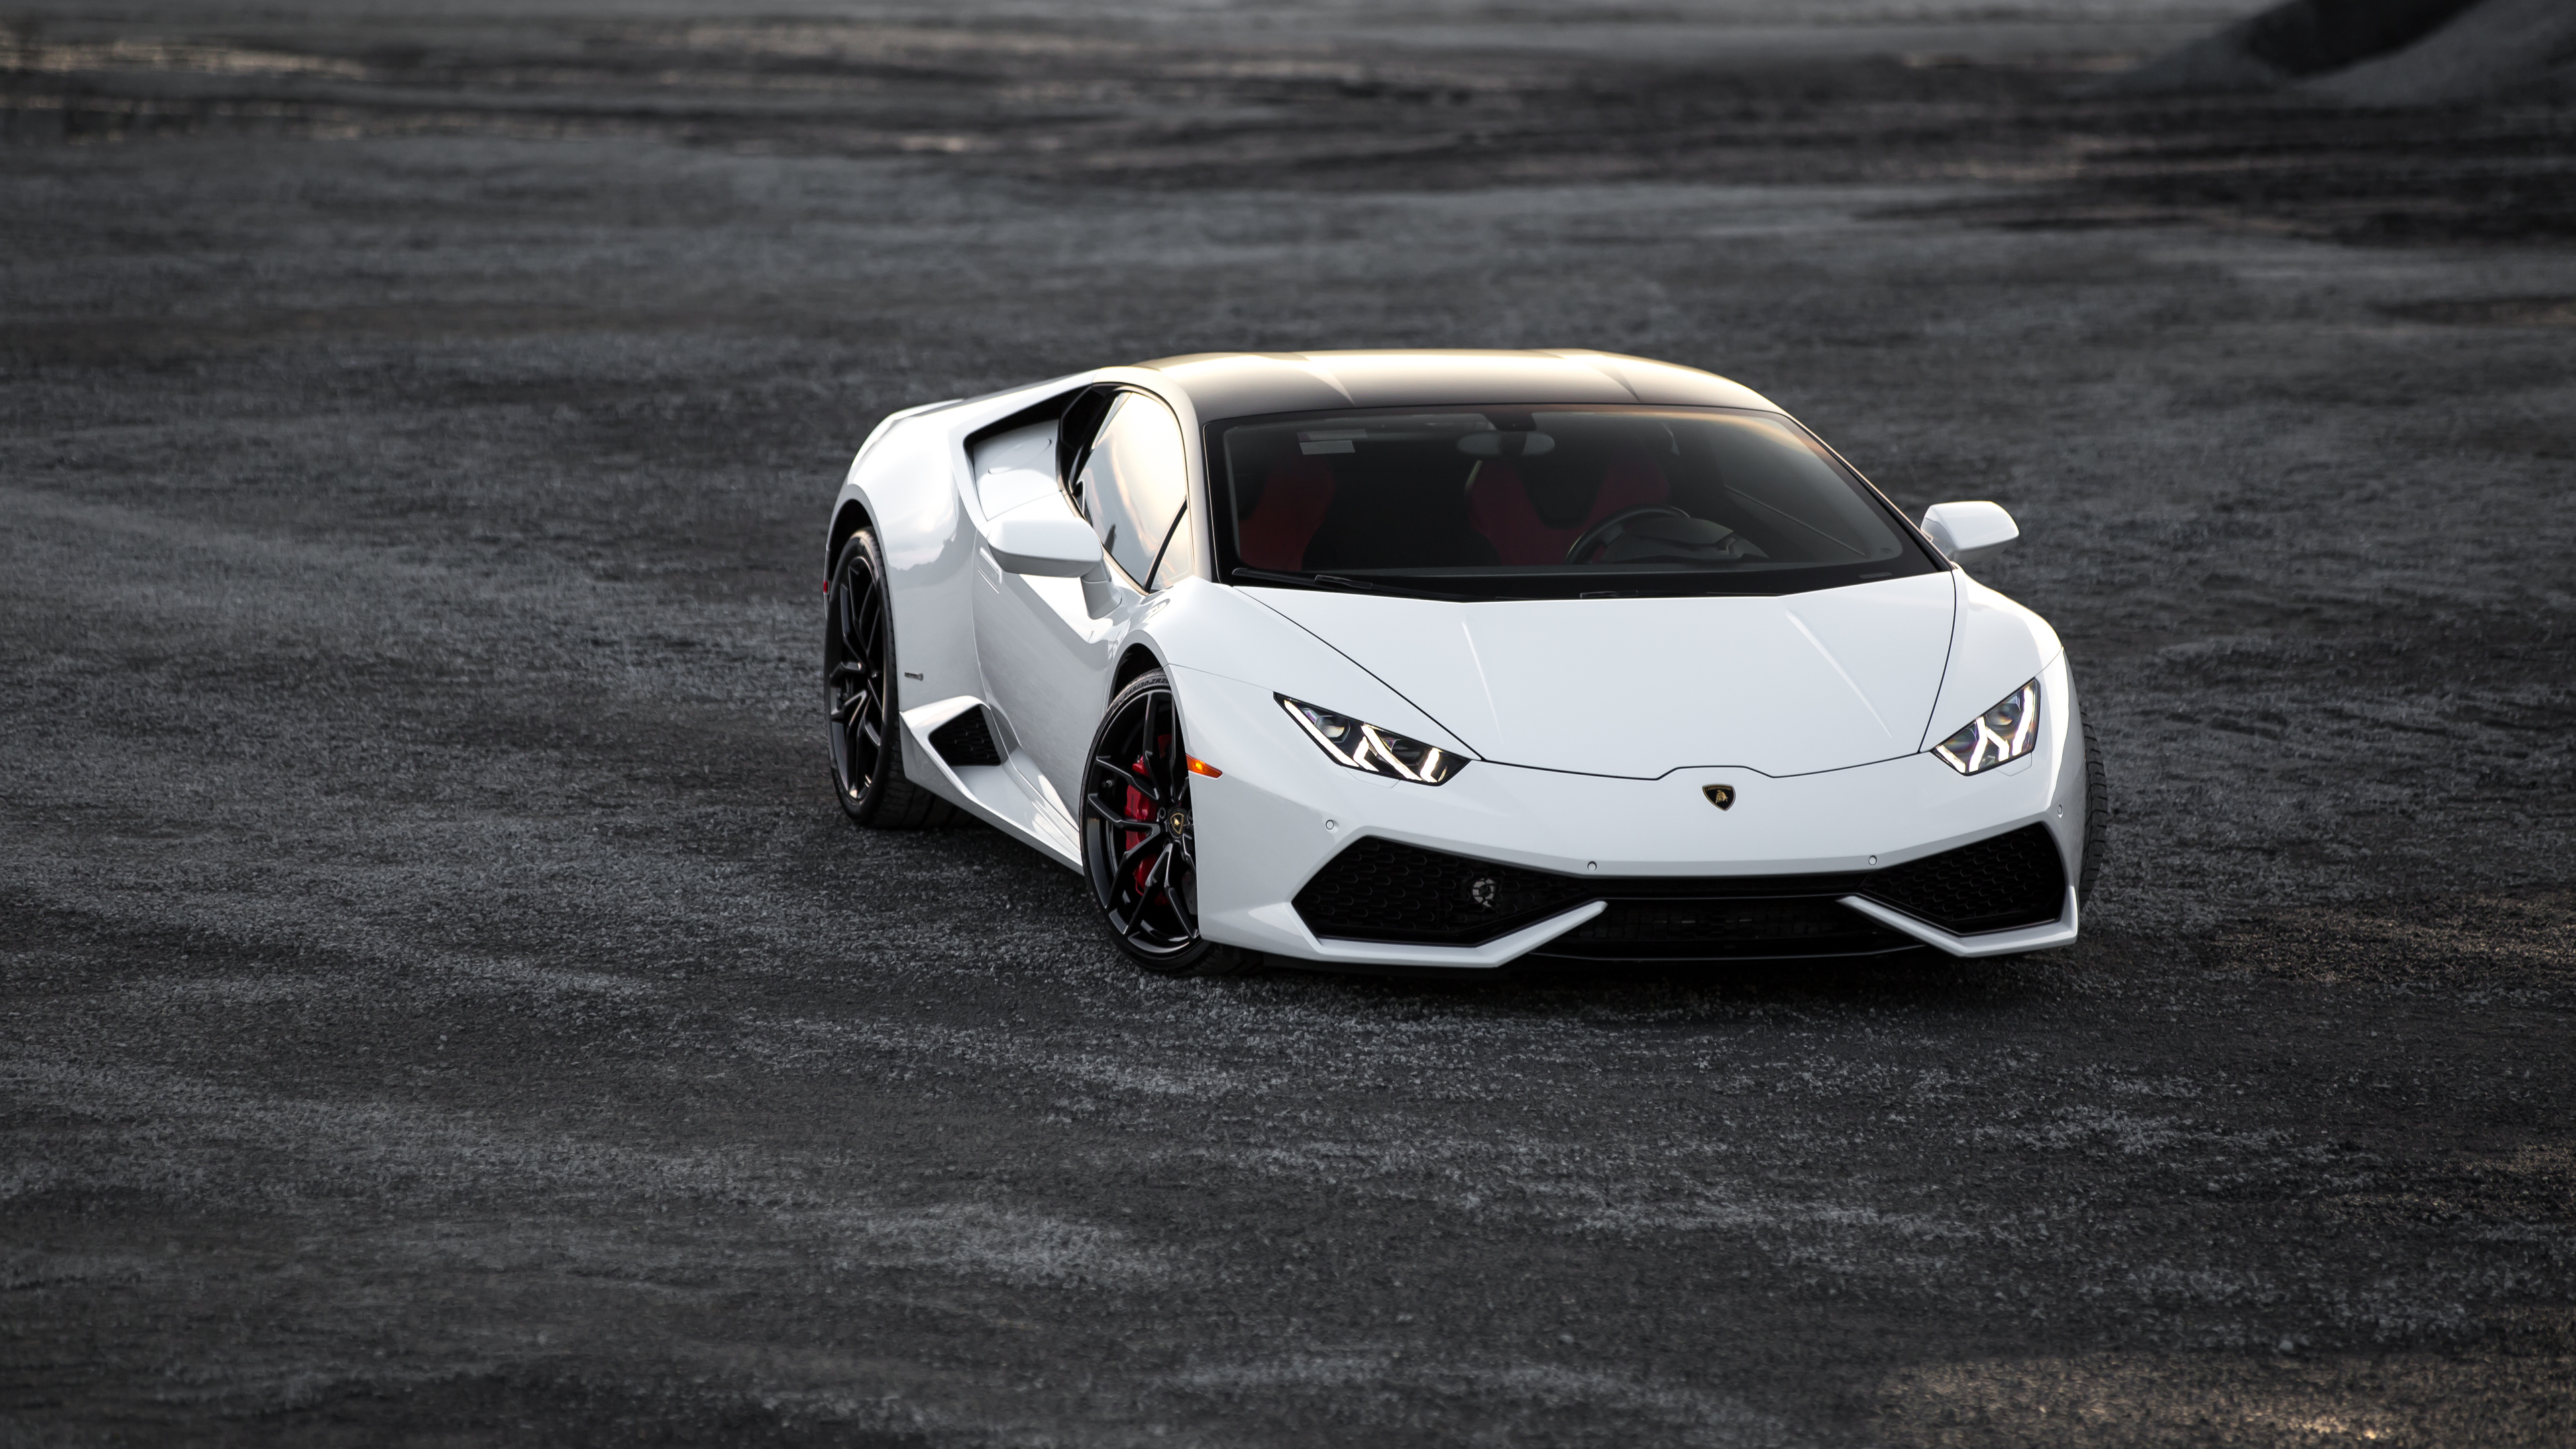 Wallpaper 4k White Lamborghini Huracan 4k 2019 4k Wallpapers